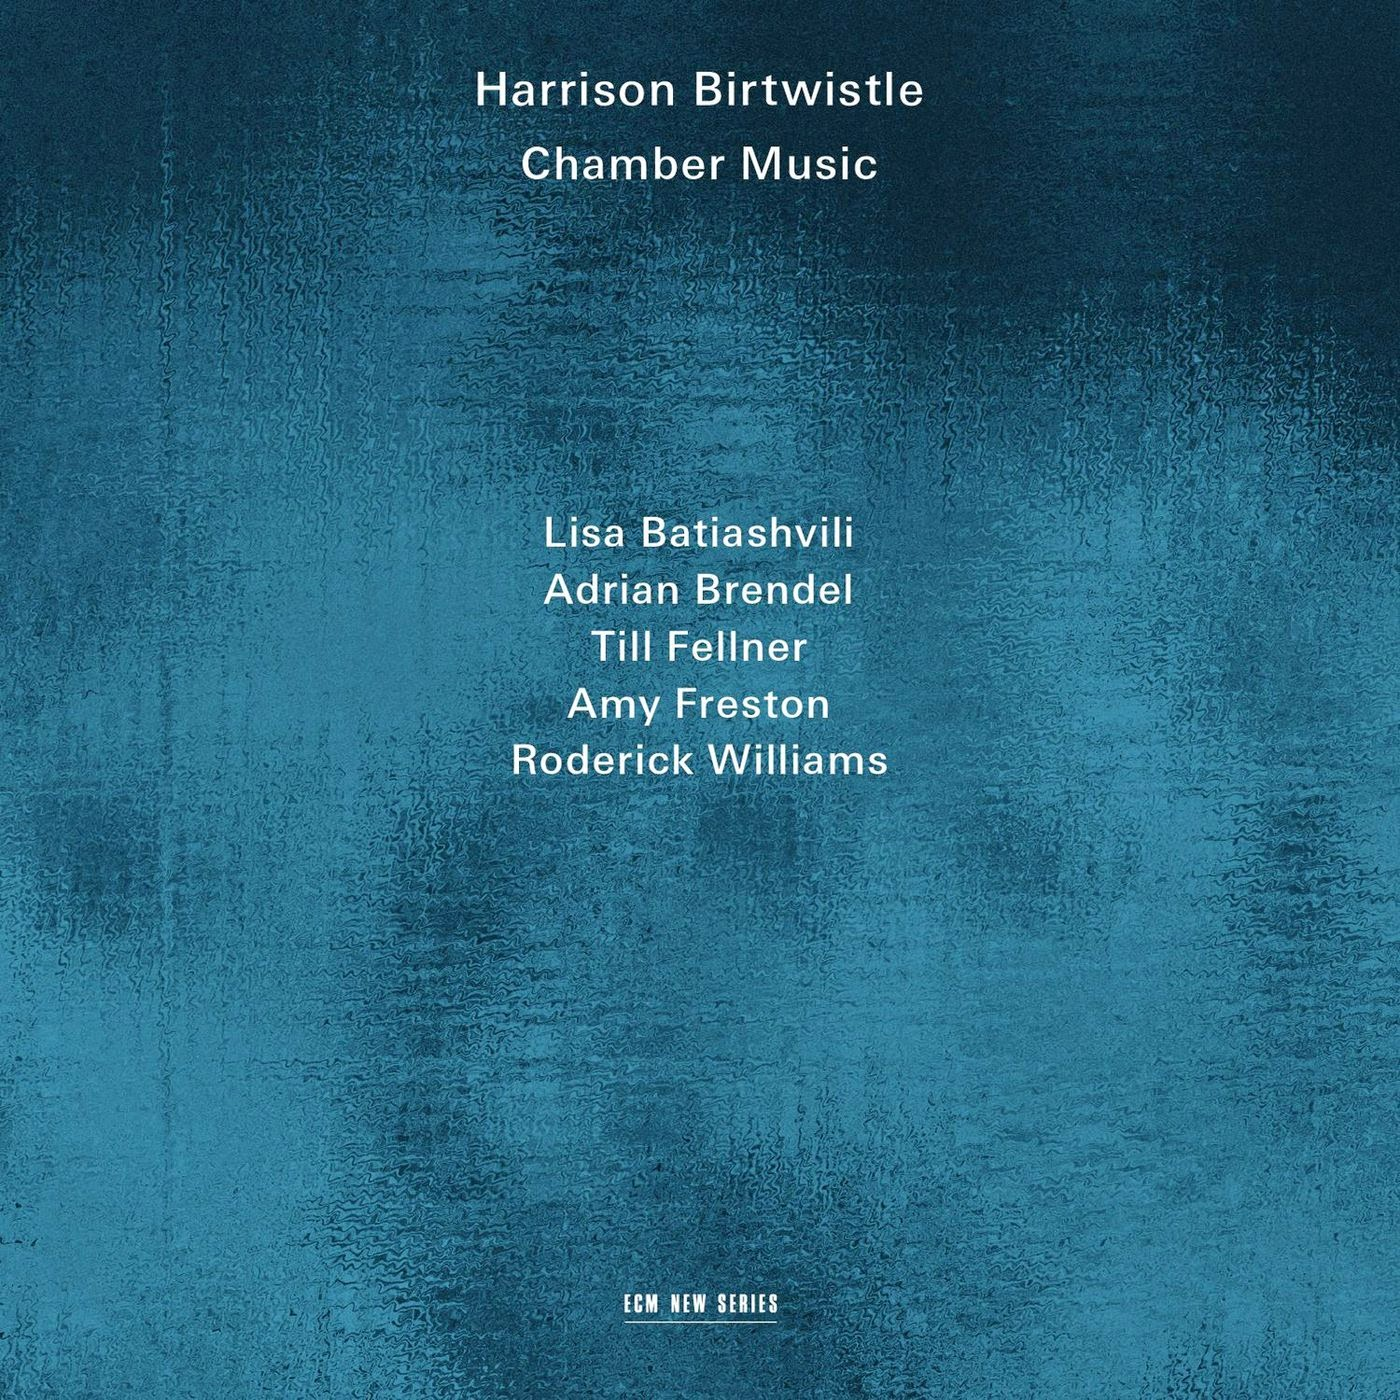 Harrison Birtwistle CHamber Music